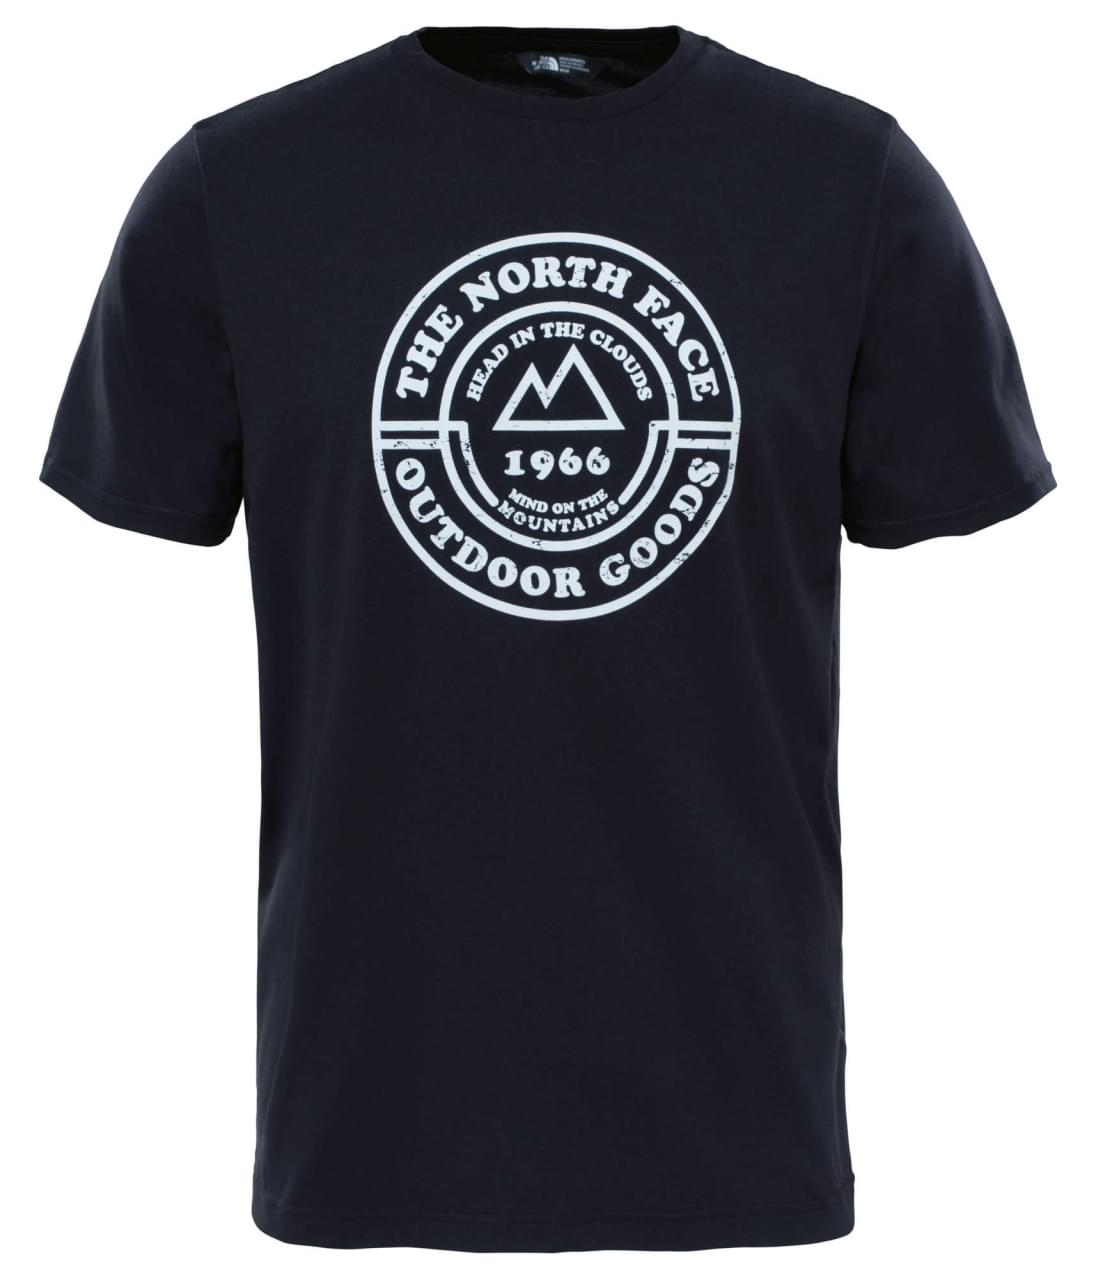 The North Face Tansa Tee